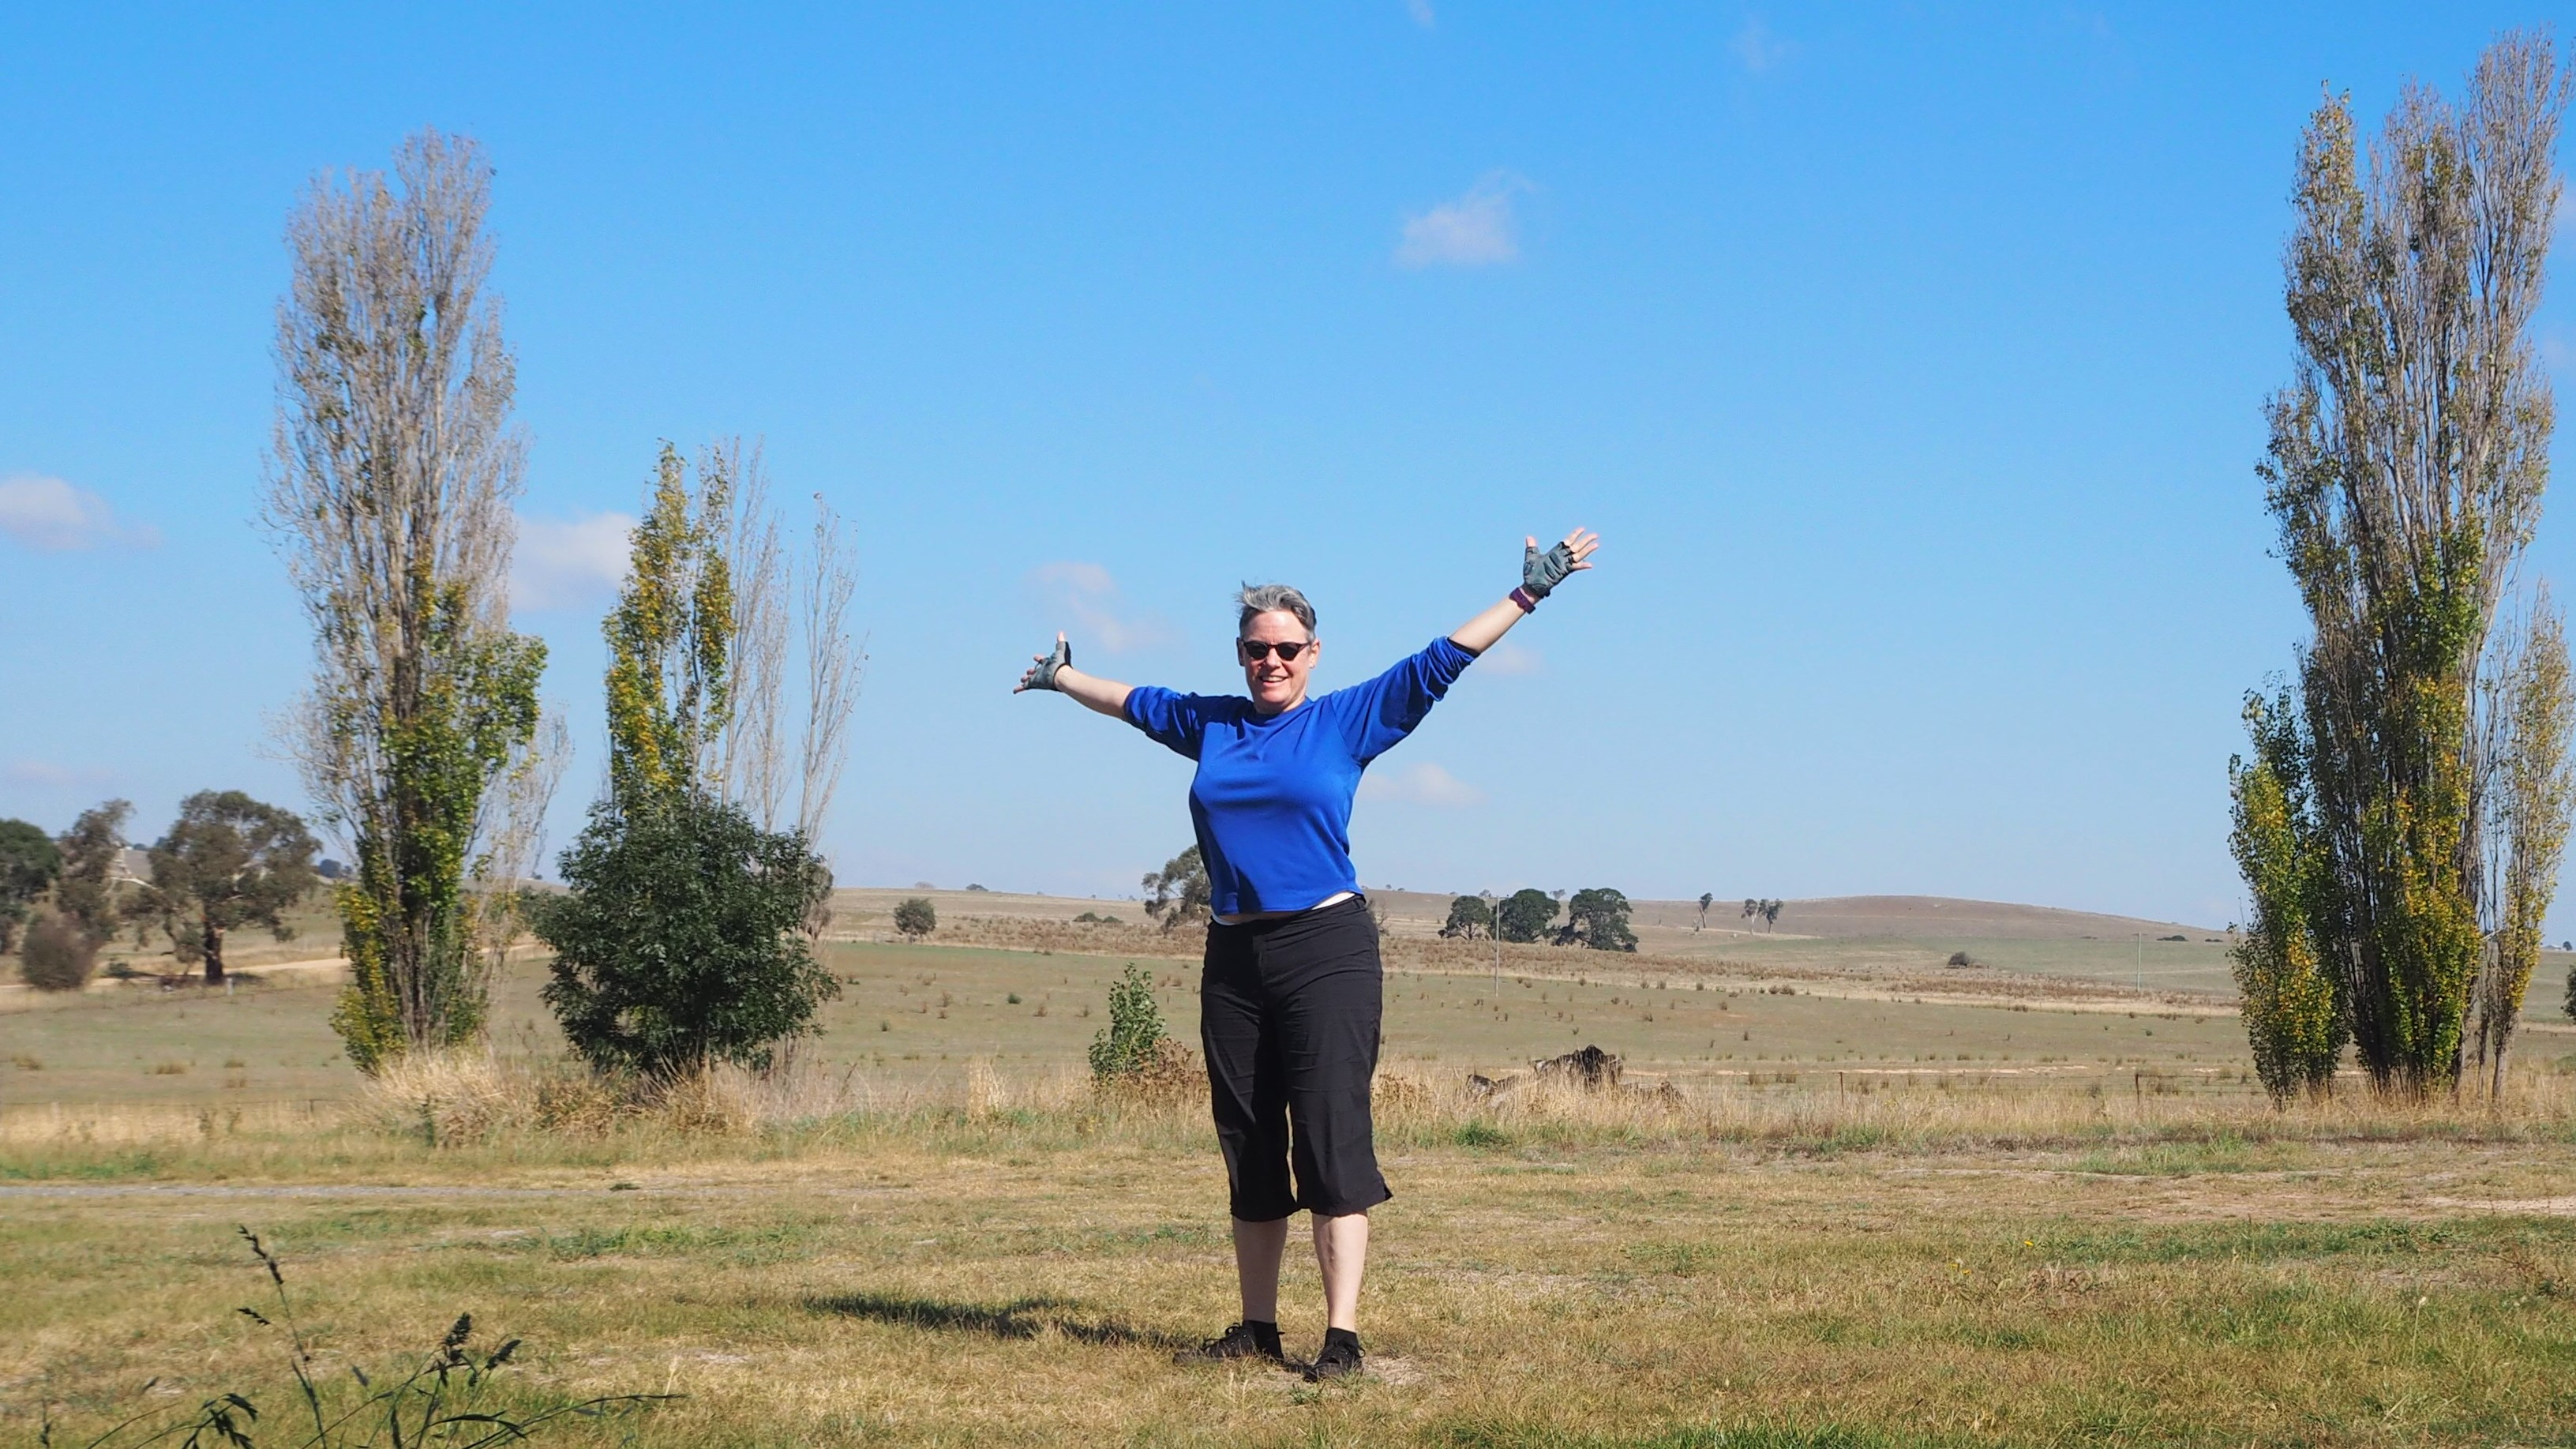 A Bicycle Riding Holiday: Day 1 – Goulburn to Collector